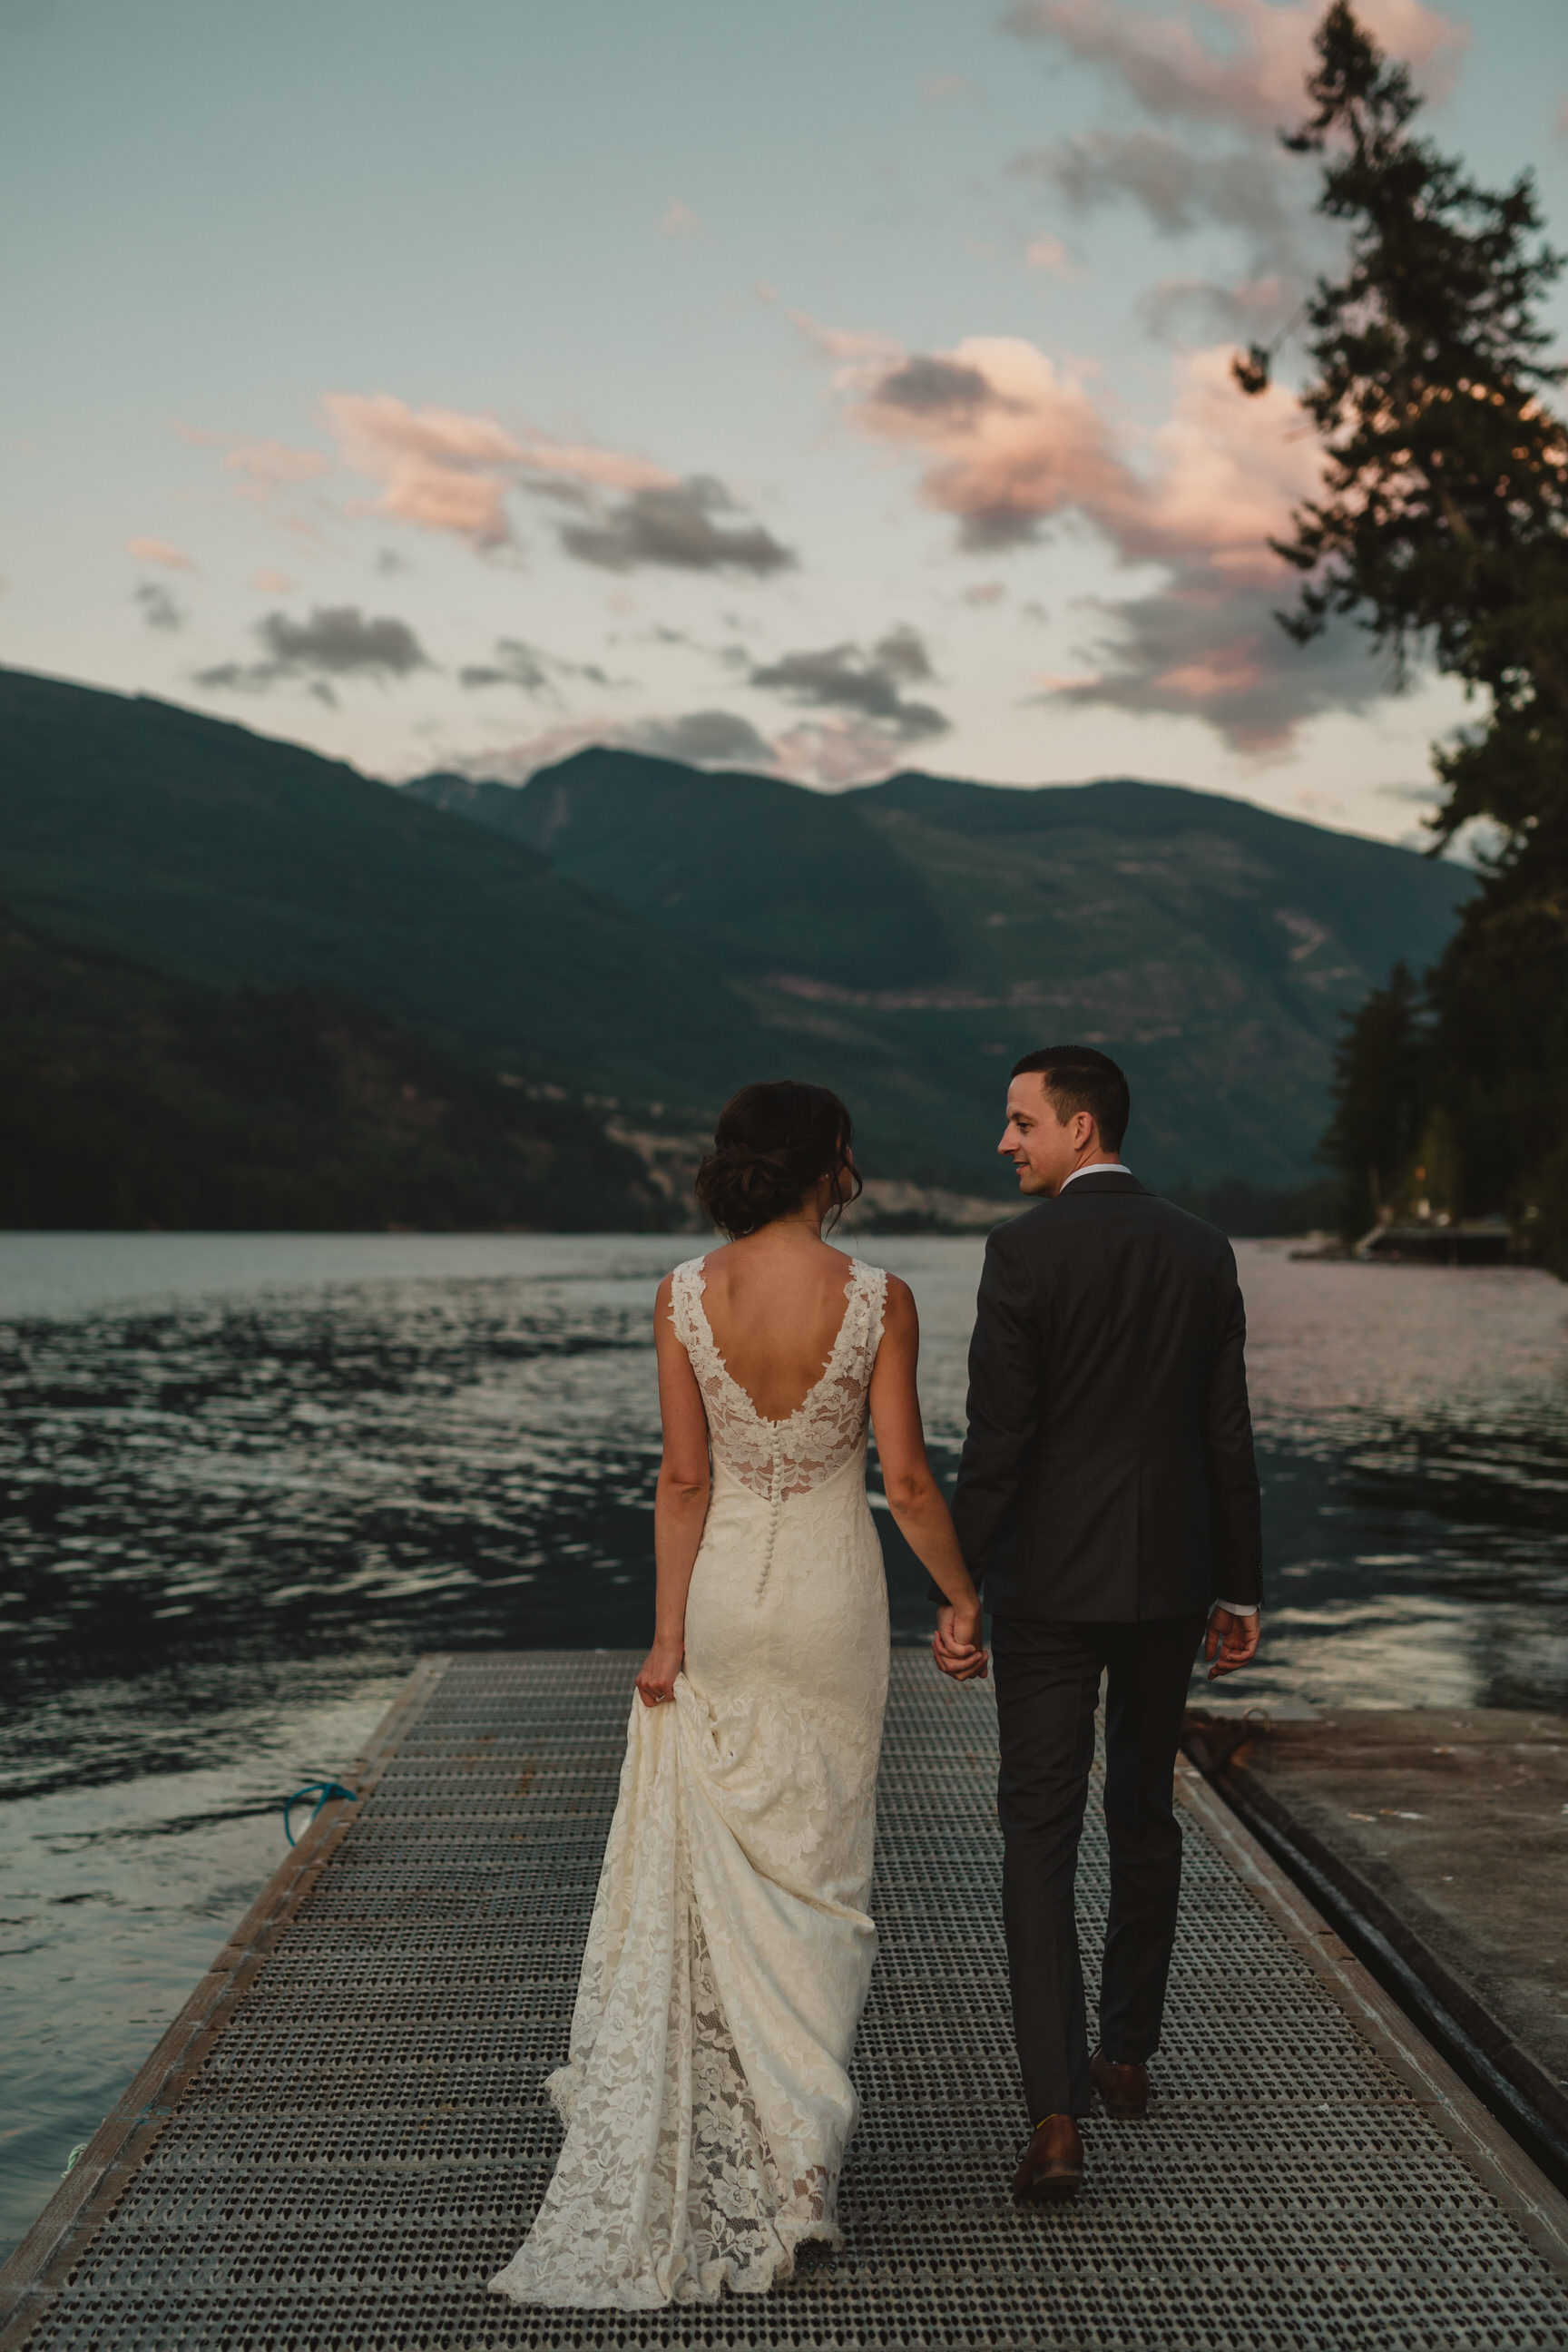 West Coast Wilderness Lodge Wedding Photos - Vancouver Wedding Photographer & Videographer - Sunshine Coast Wedding Photos - Sunshine Coast Wedding Photographer - Jennifer Picard Photography - IMG_1633.jpg